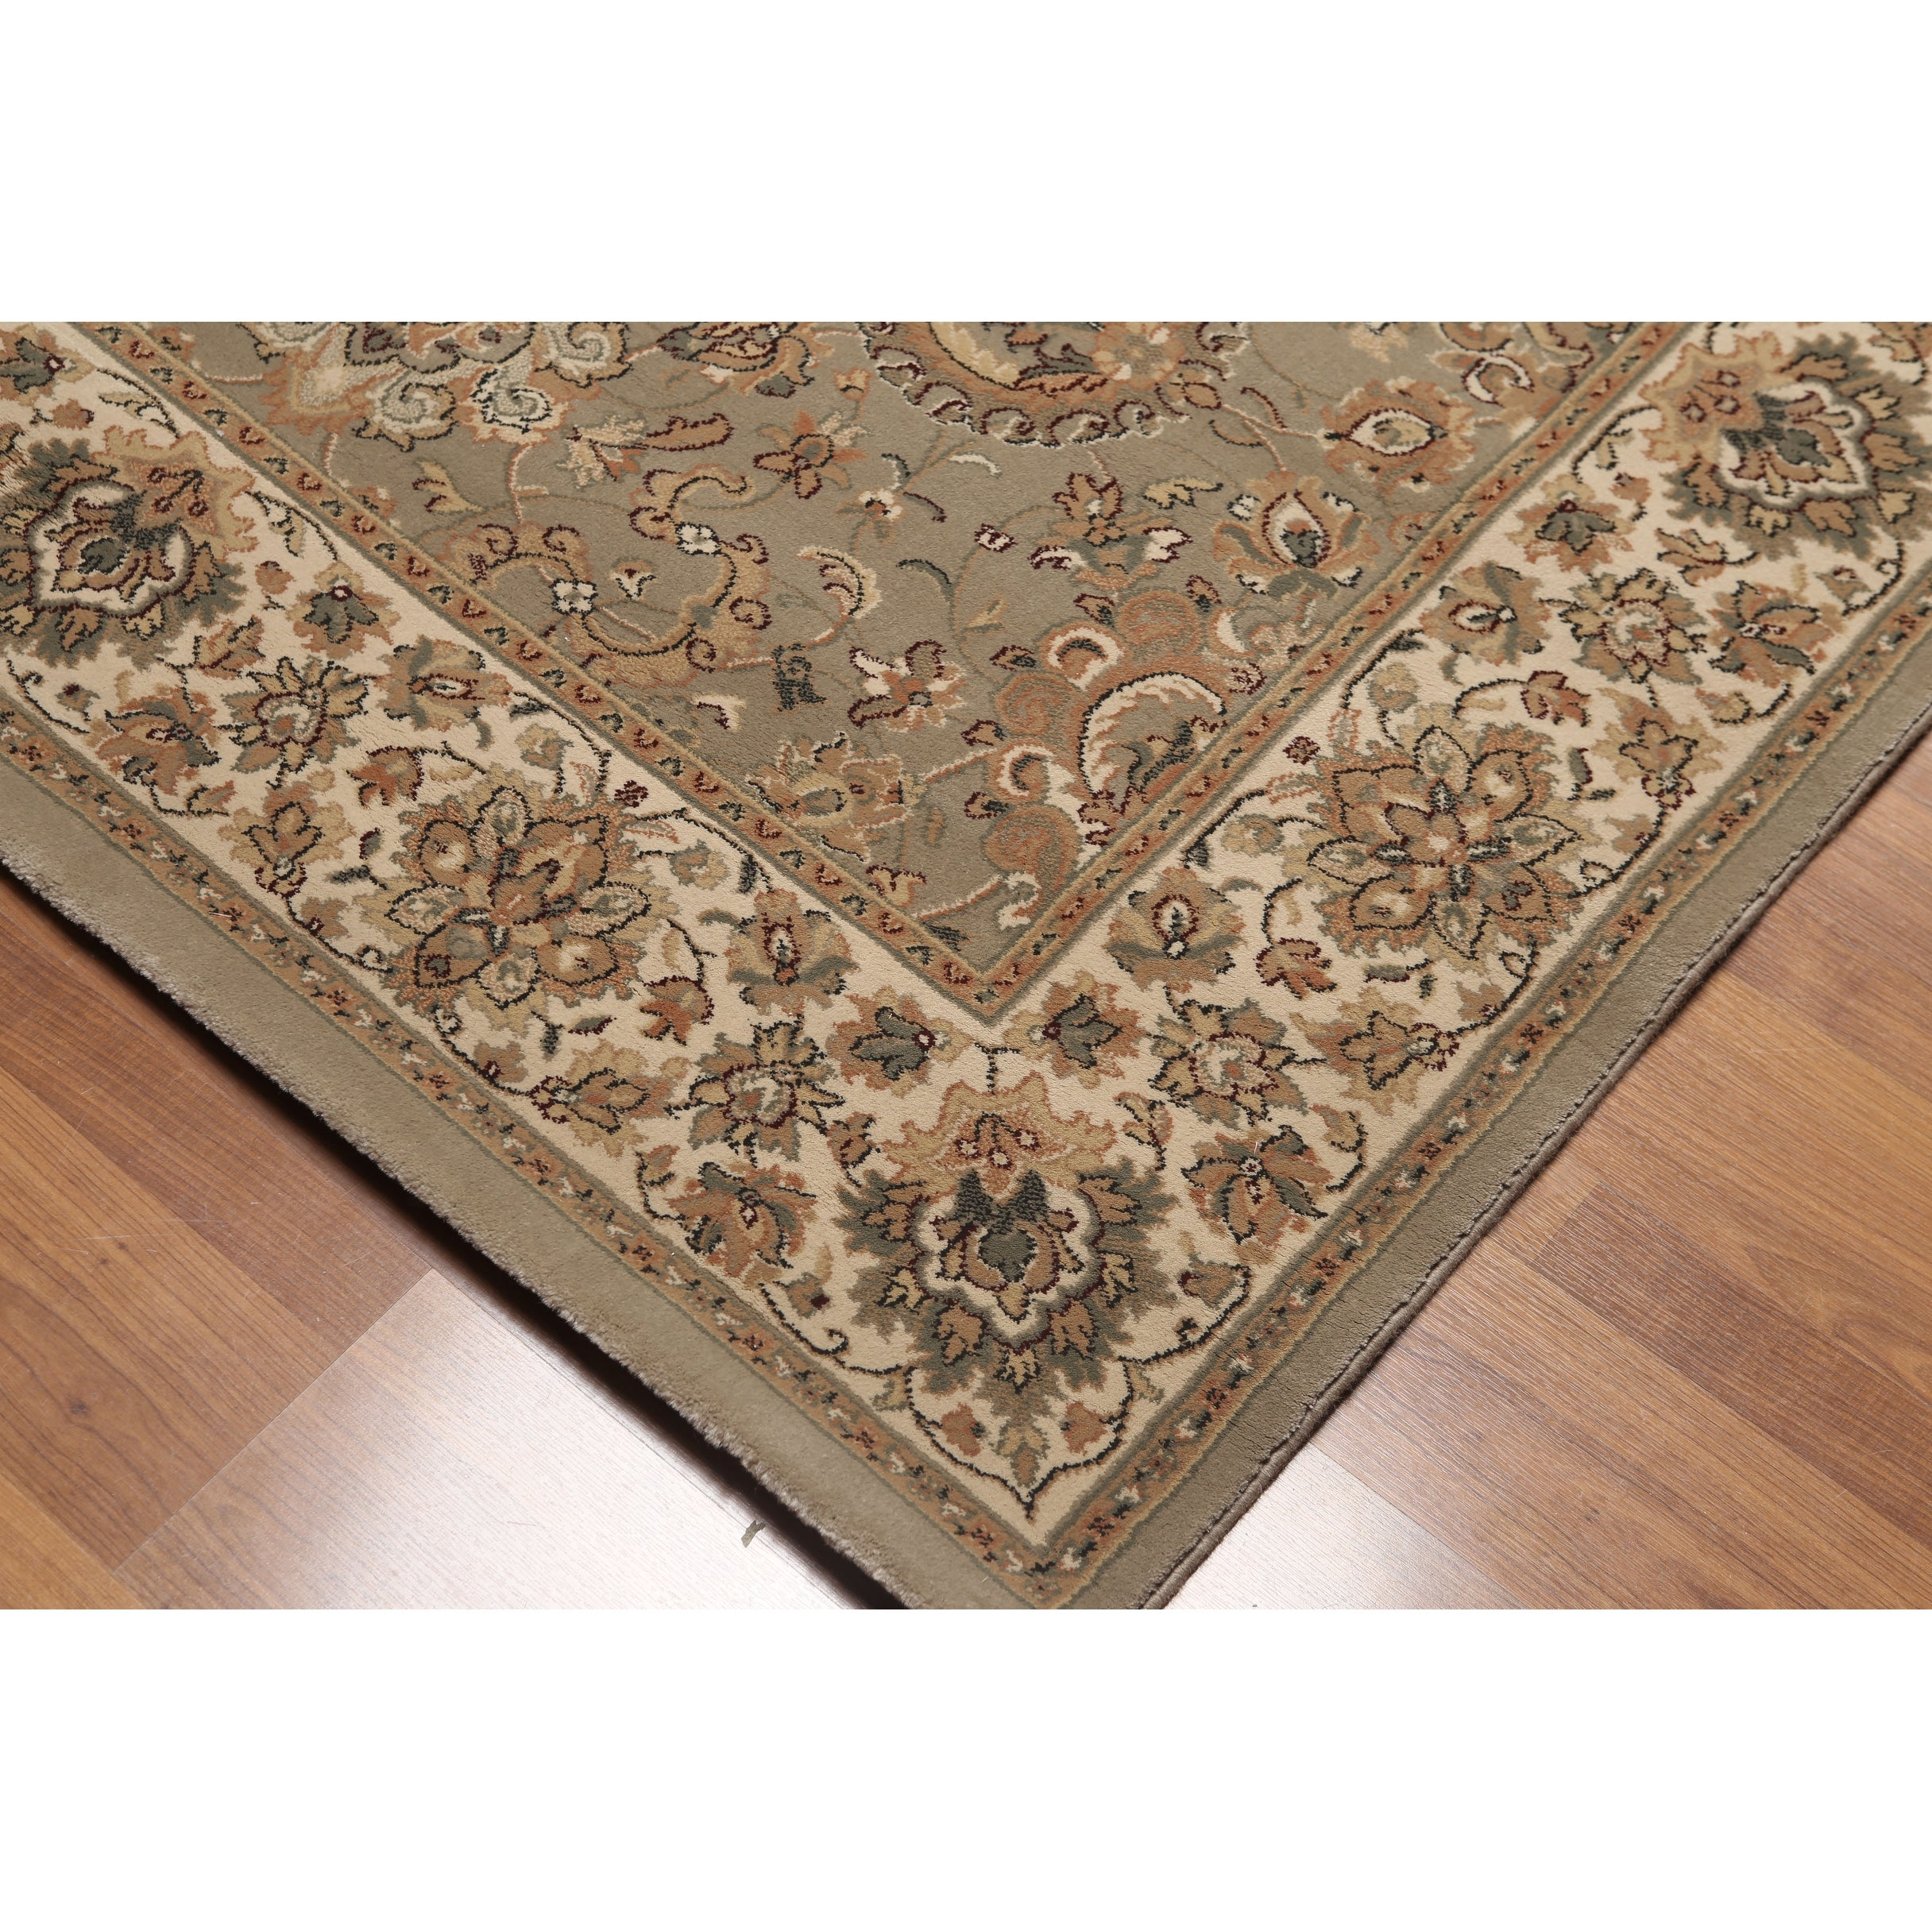 Gray Beige Brown Burgundy Multi Oriental Rug Wool Traditional Oriental Area Rug 5x7 5 X 6 10 Overstock 31302230